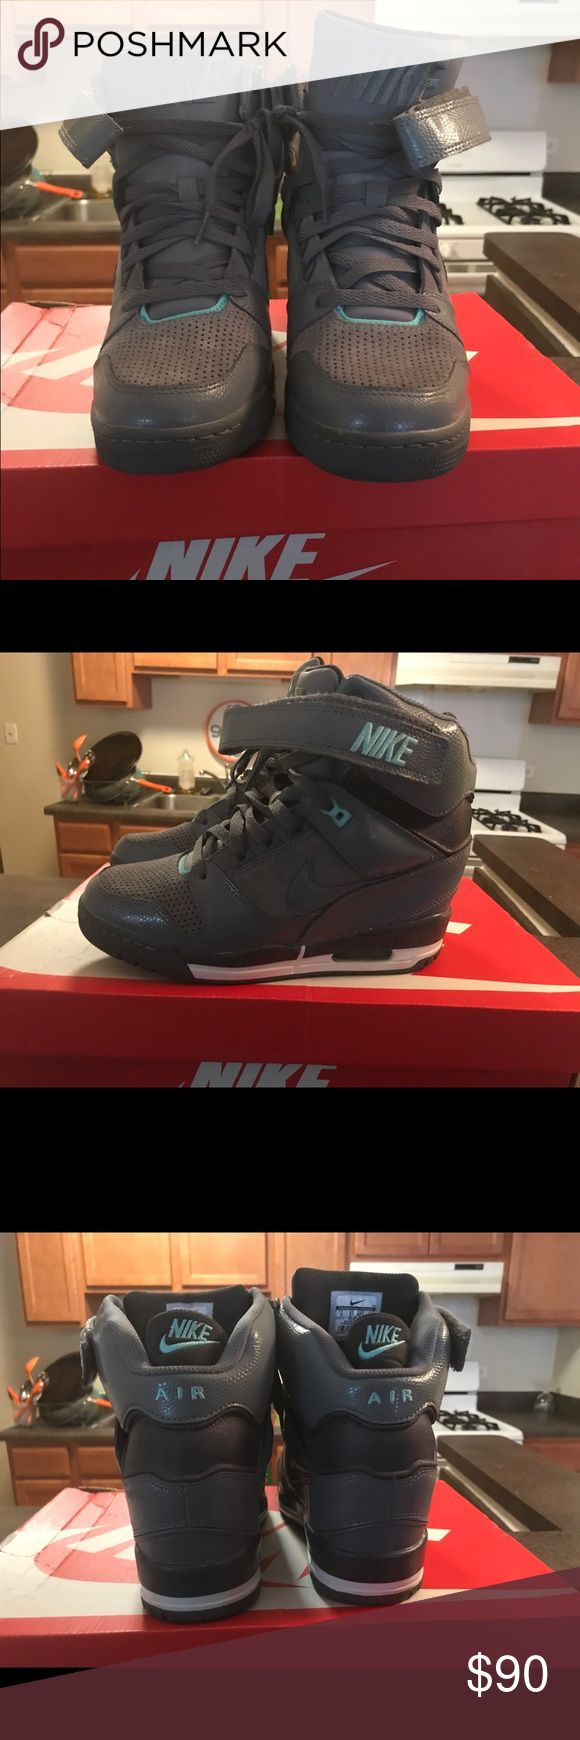 Nike sky hi dunk limited edition In Excellent condition Nike Shoes Athletic Shoes